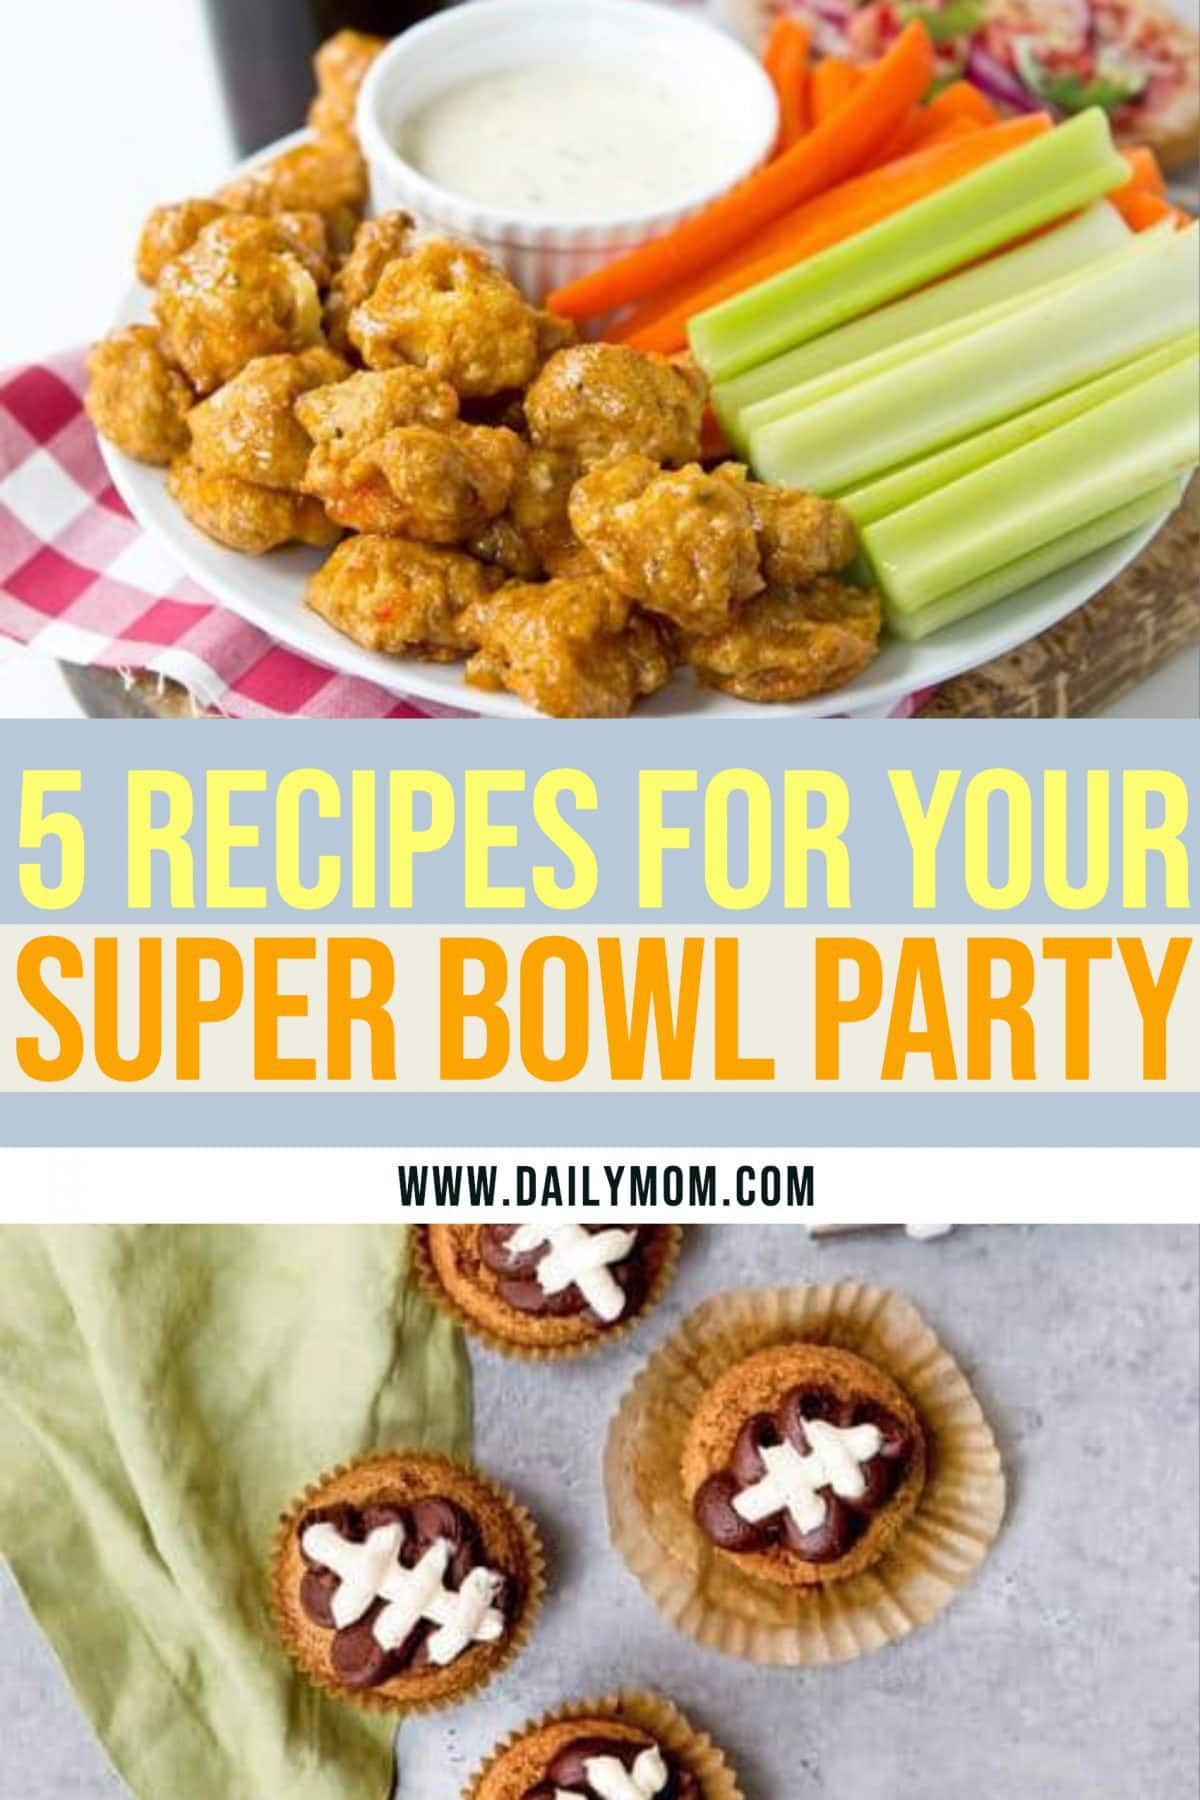 5 Super Bowl Party Recipes You Need To Make